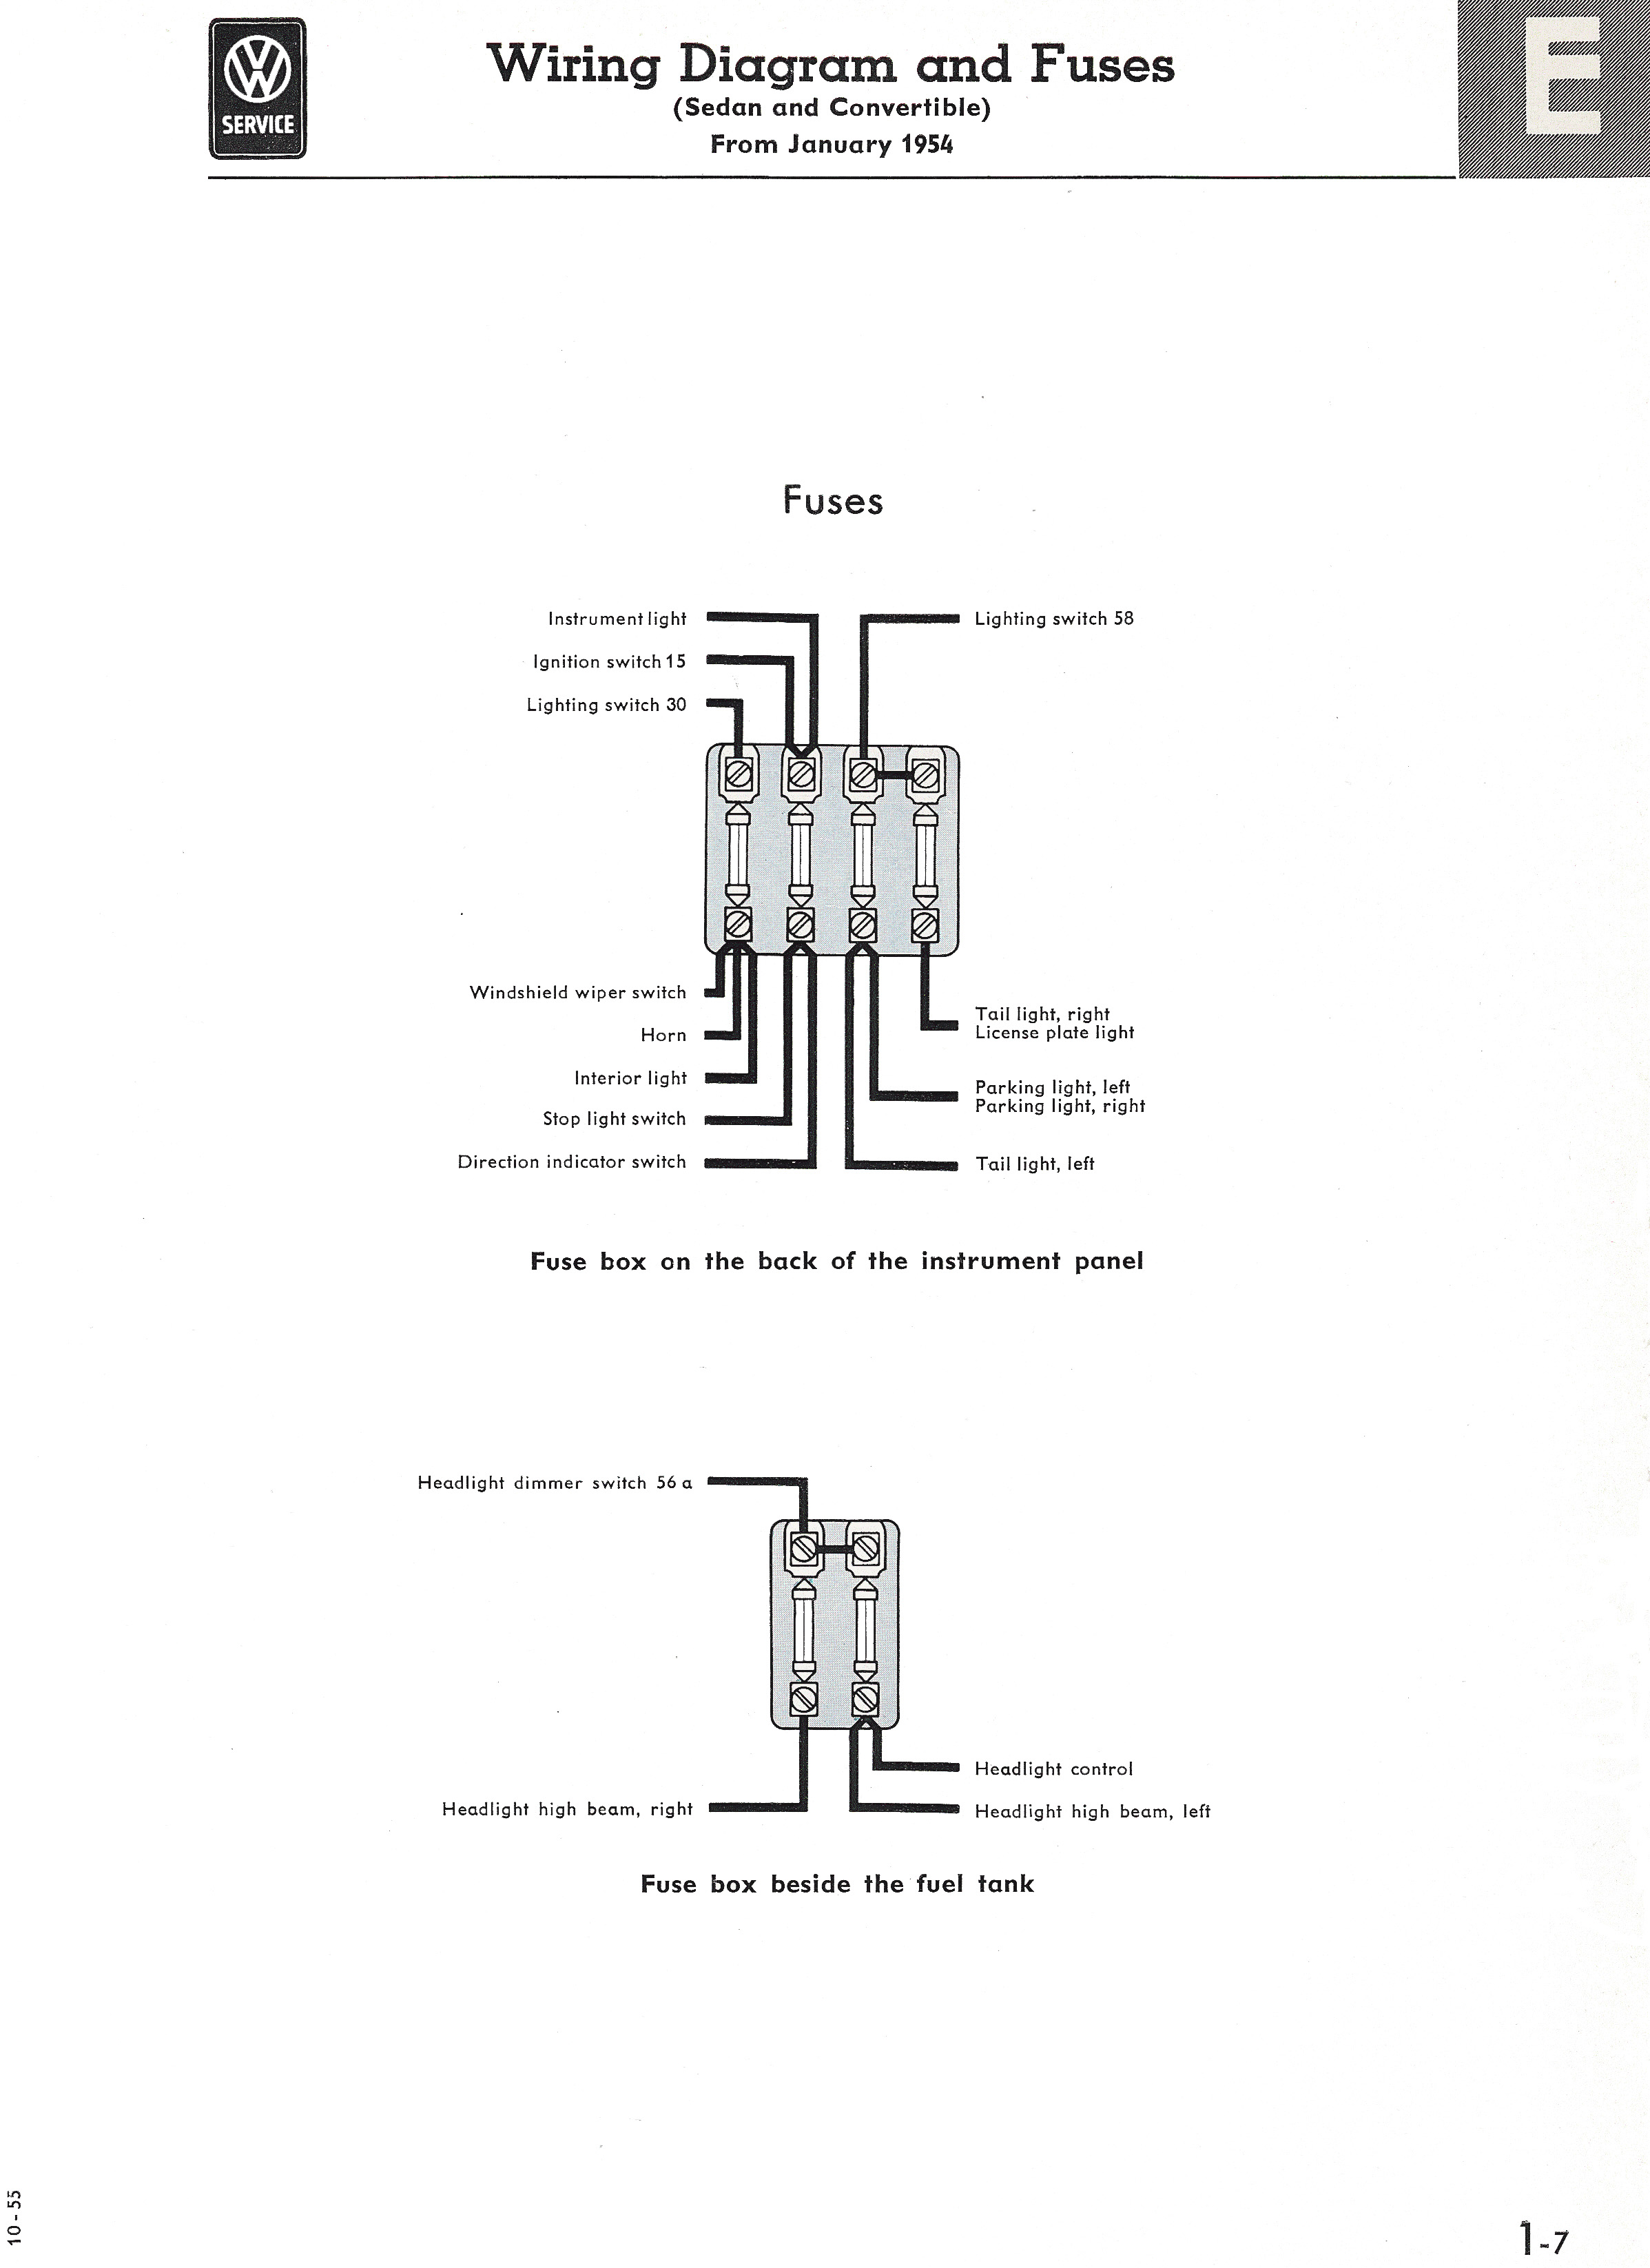 Wiring Diagram For Car Fuse Box Bmw 1978 82 Library